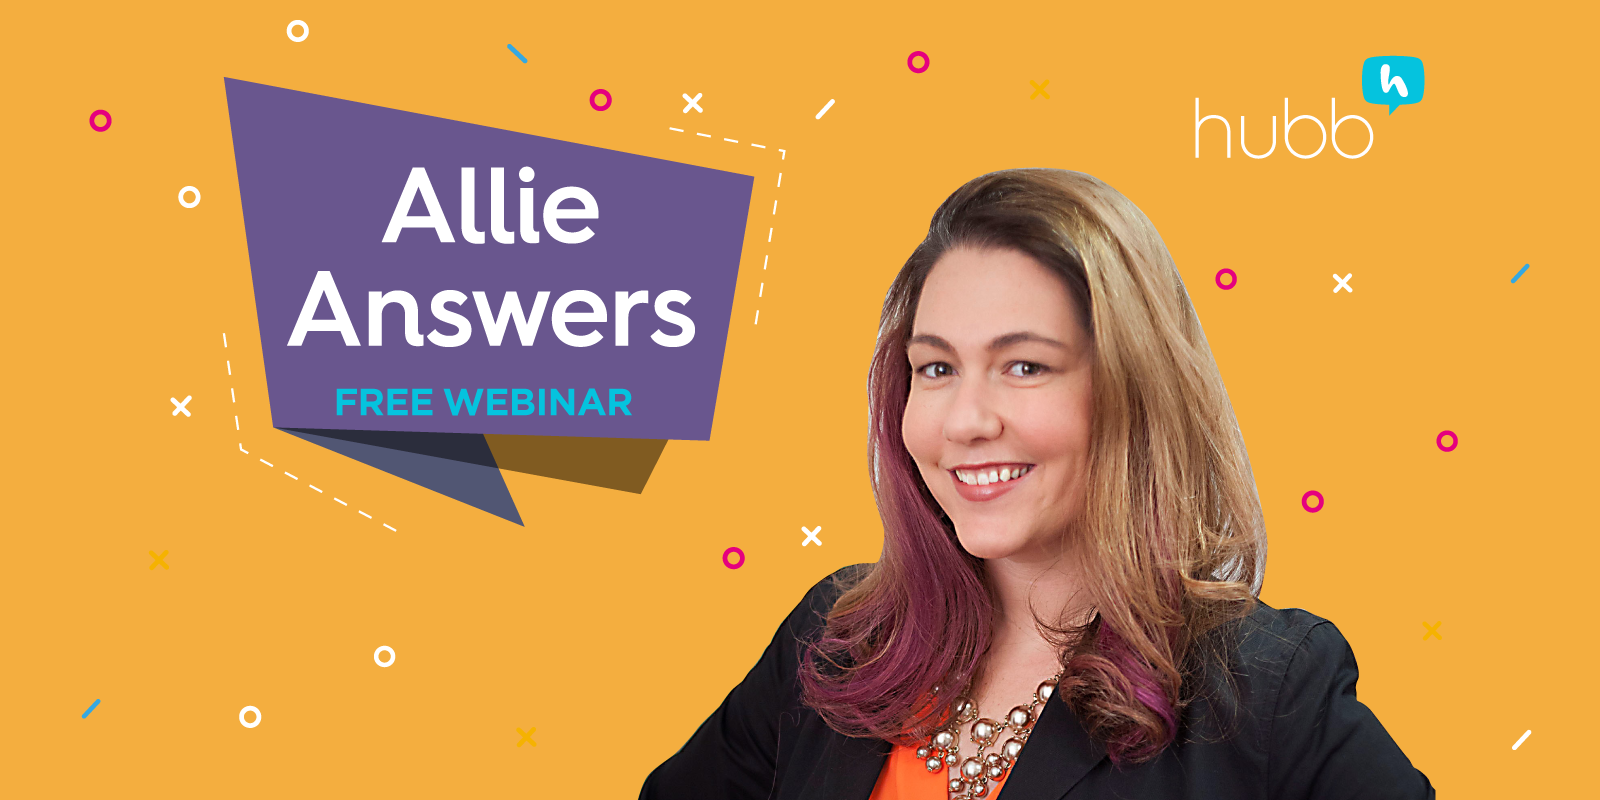 Allie-Answers-Webinar-2018-Social